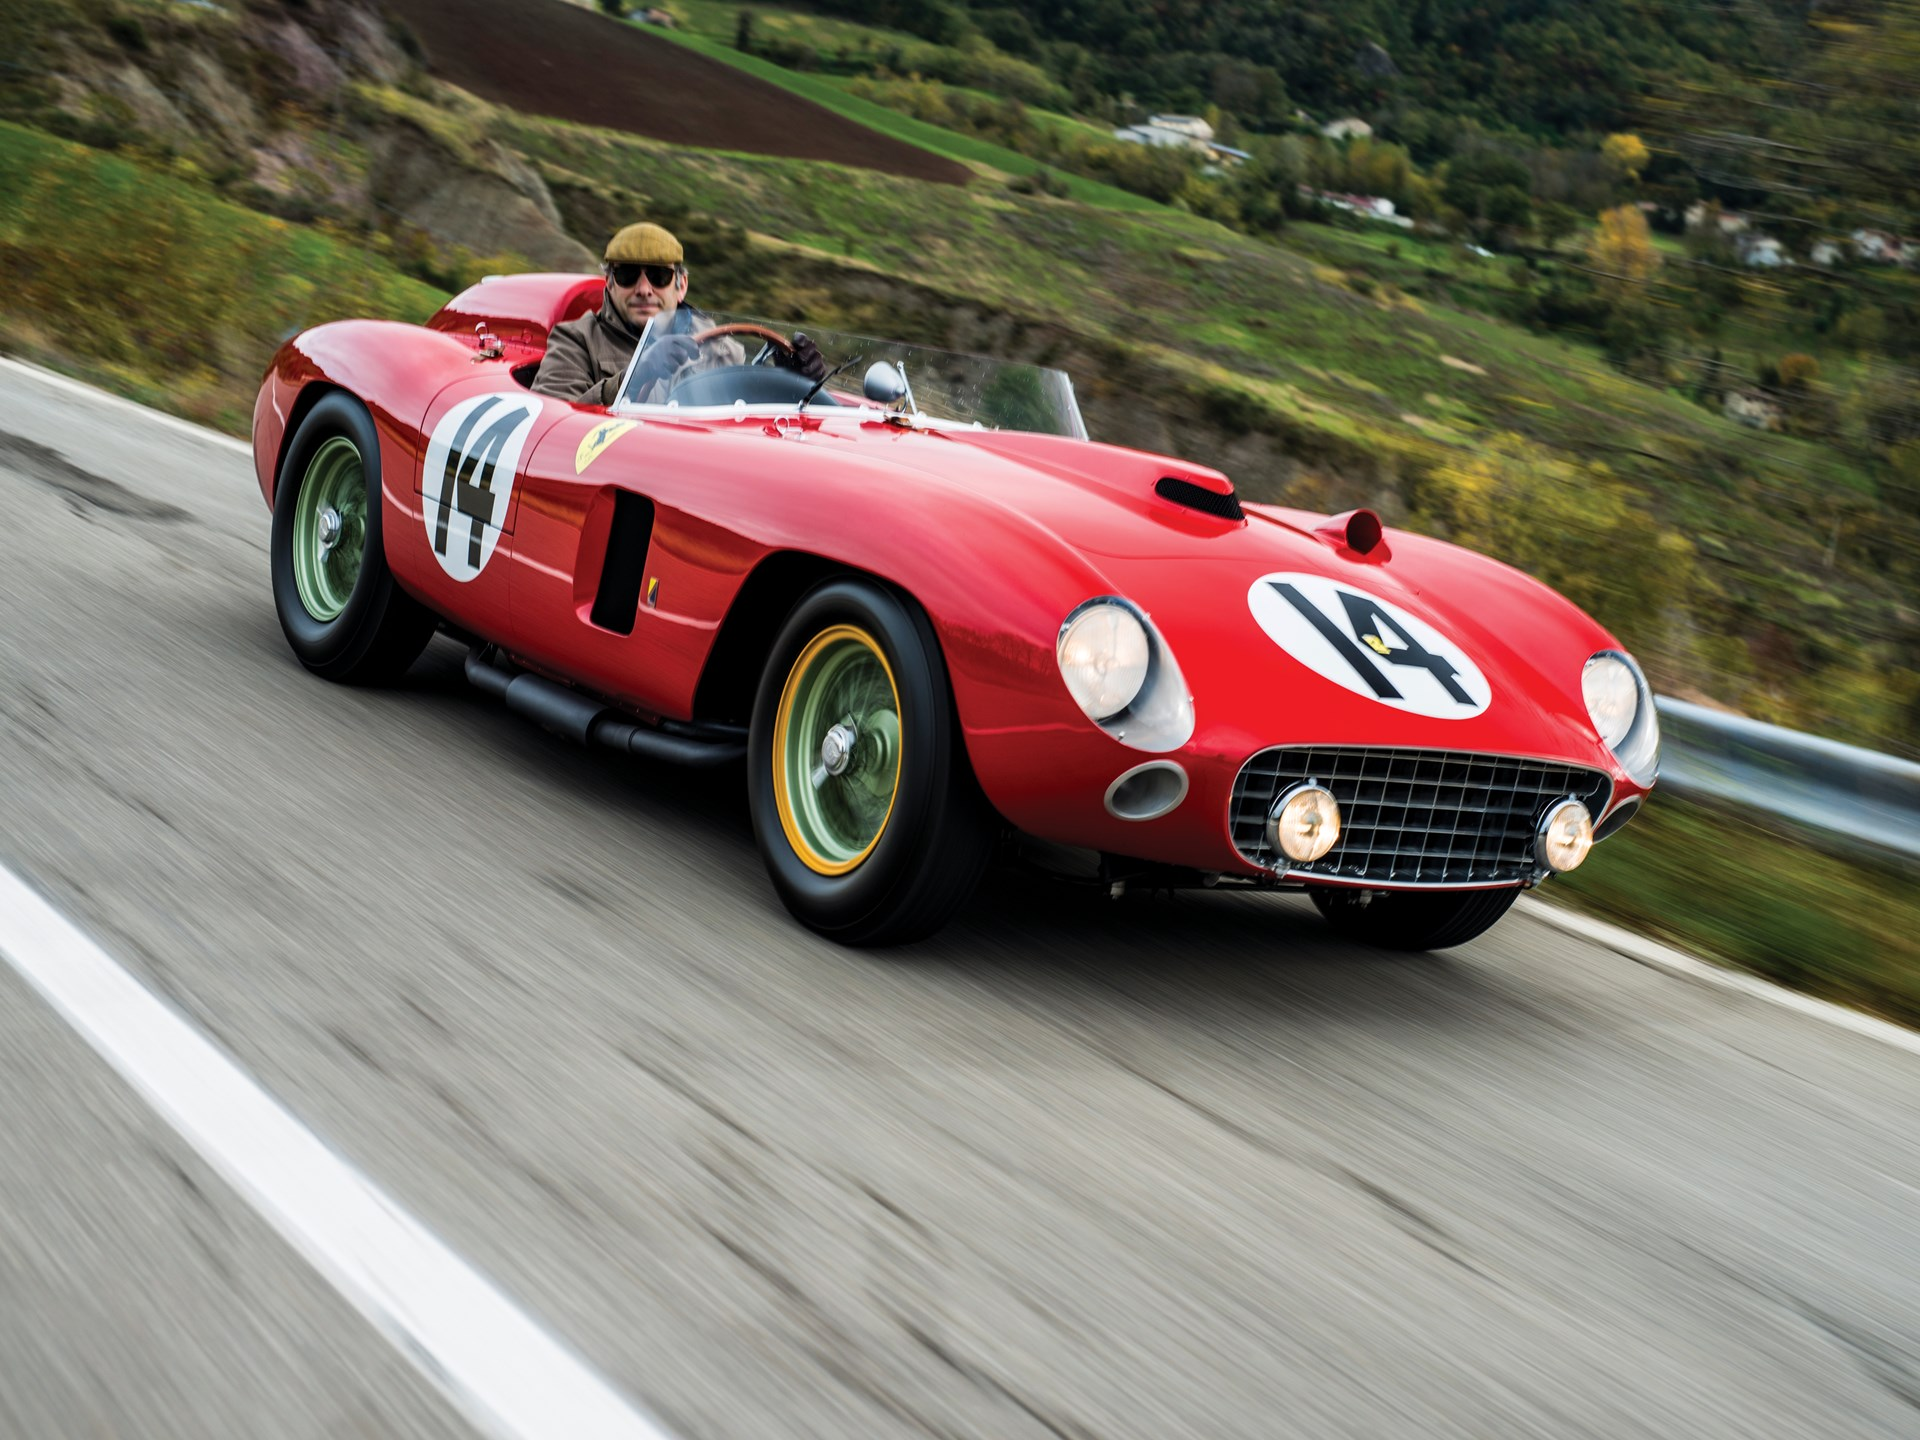 1956 Ferrari 290 MM 3/4 driving